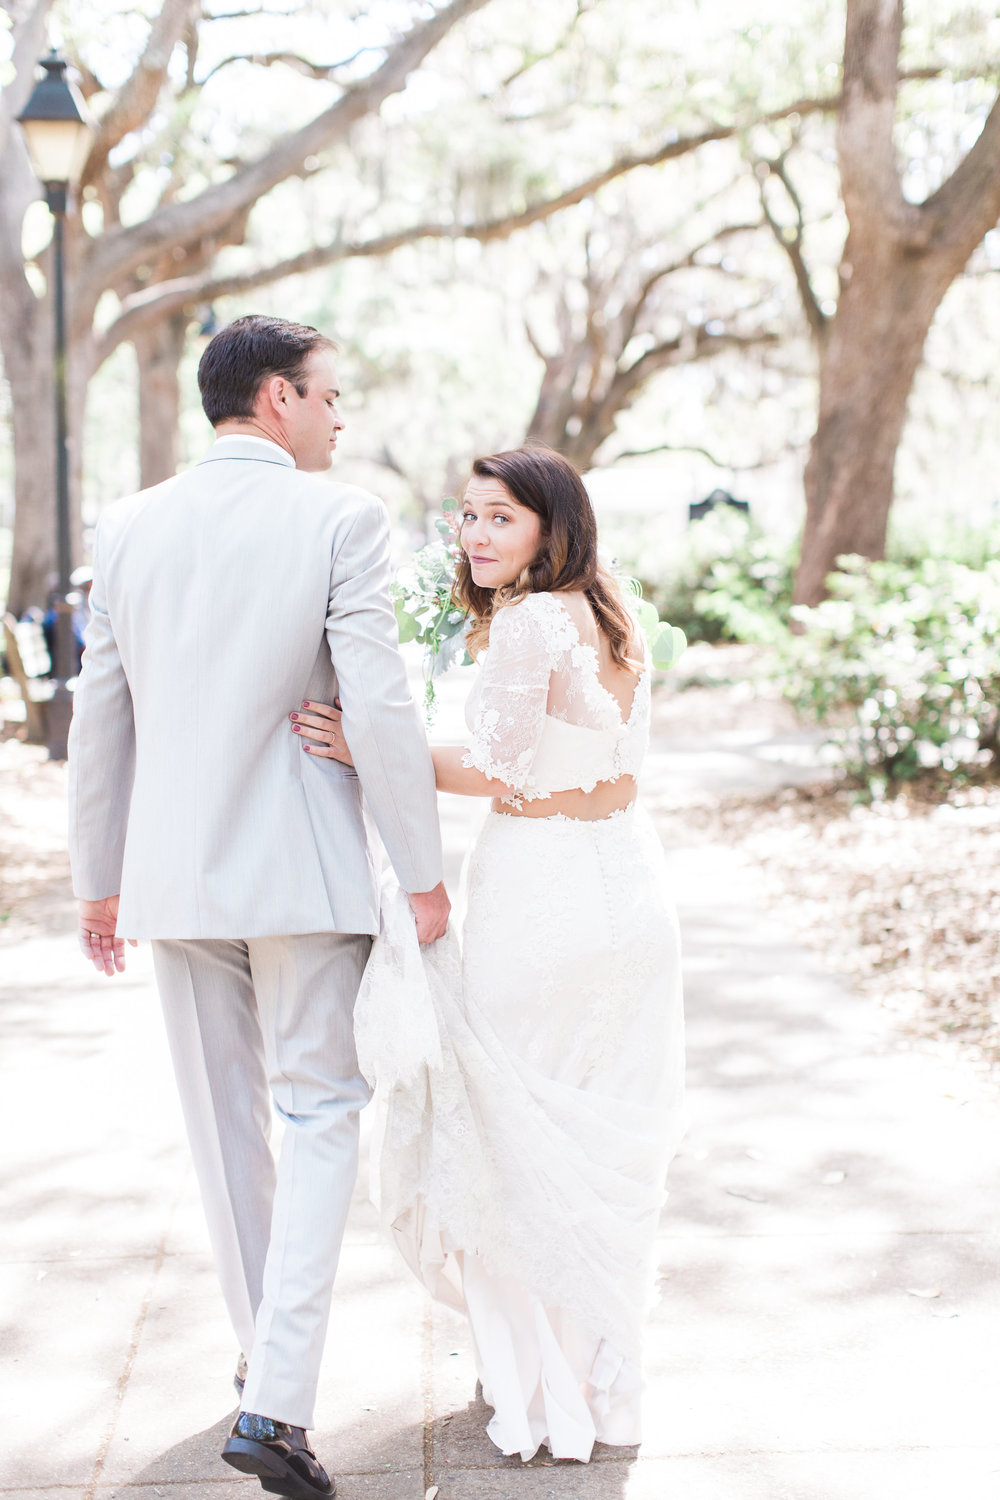 apt-b-photography-ivory-and-beau-bridal-boutique-savannah-florist-savannah-bridal-boutique-savannah-elopment-forsyth-fountain-wedding-intimate-wedding-southern-elopement-savannah-weddings-34.jpg